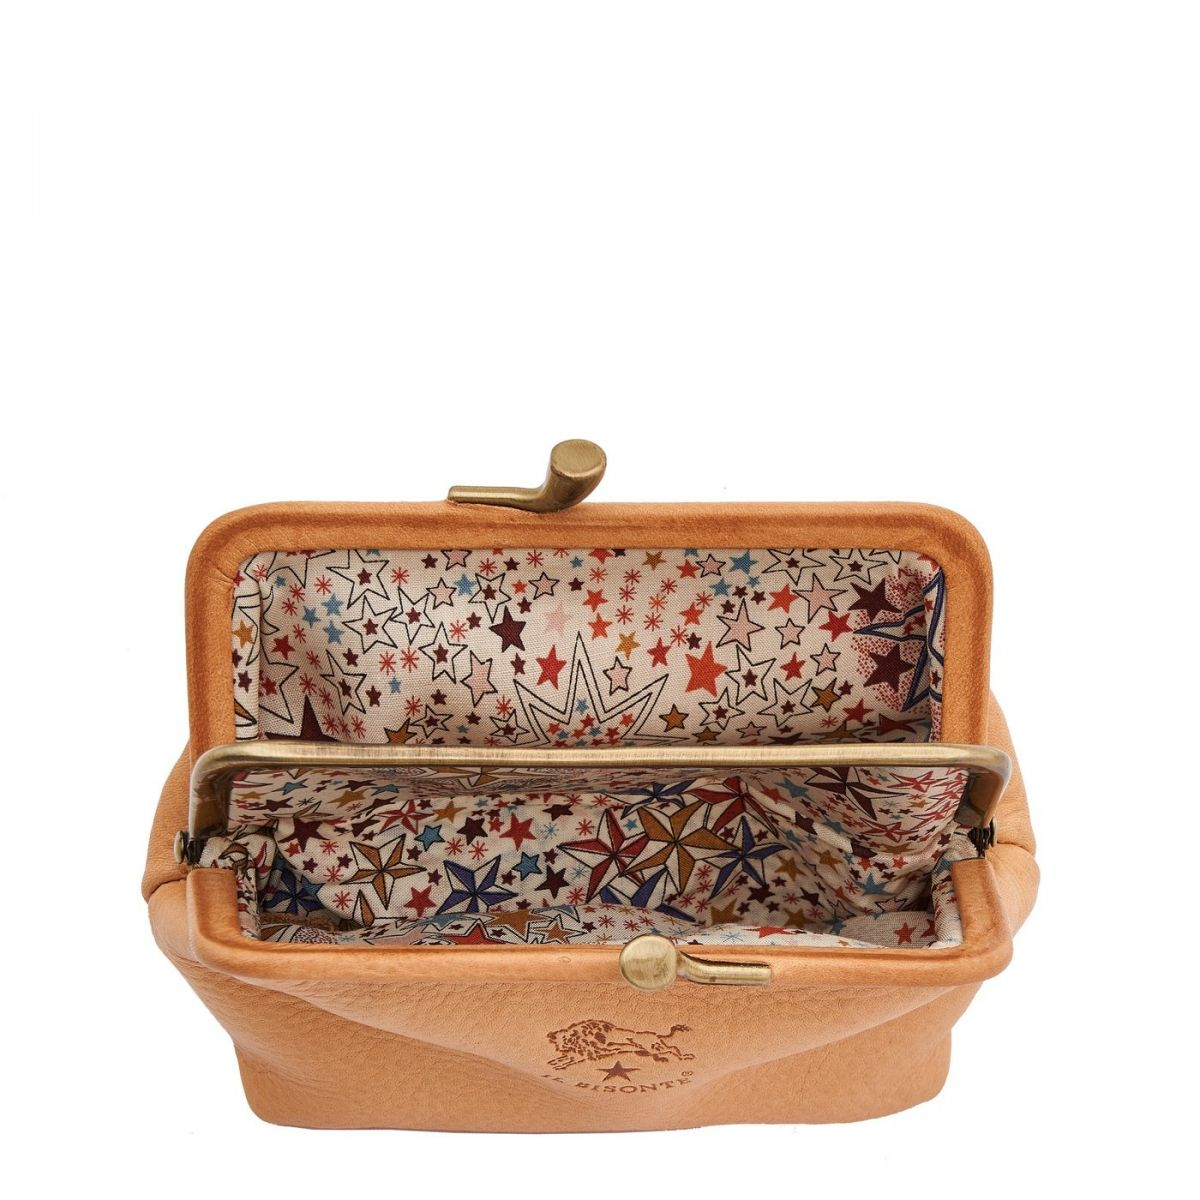 Women's Coin Purse  in Cowhide Leather SCP005 color Natural | Details